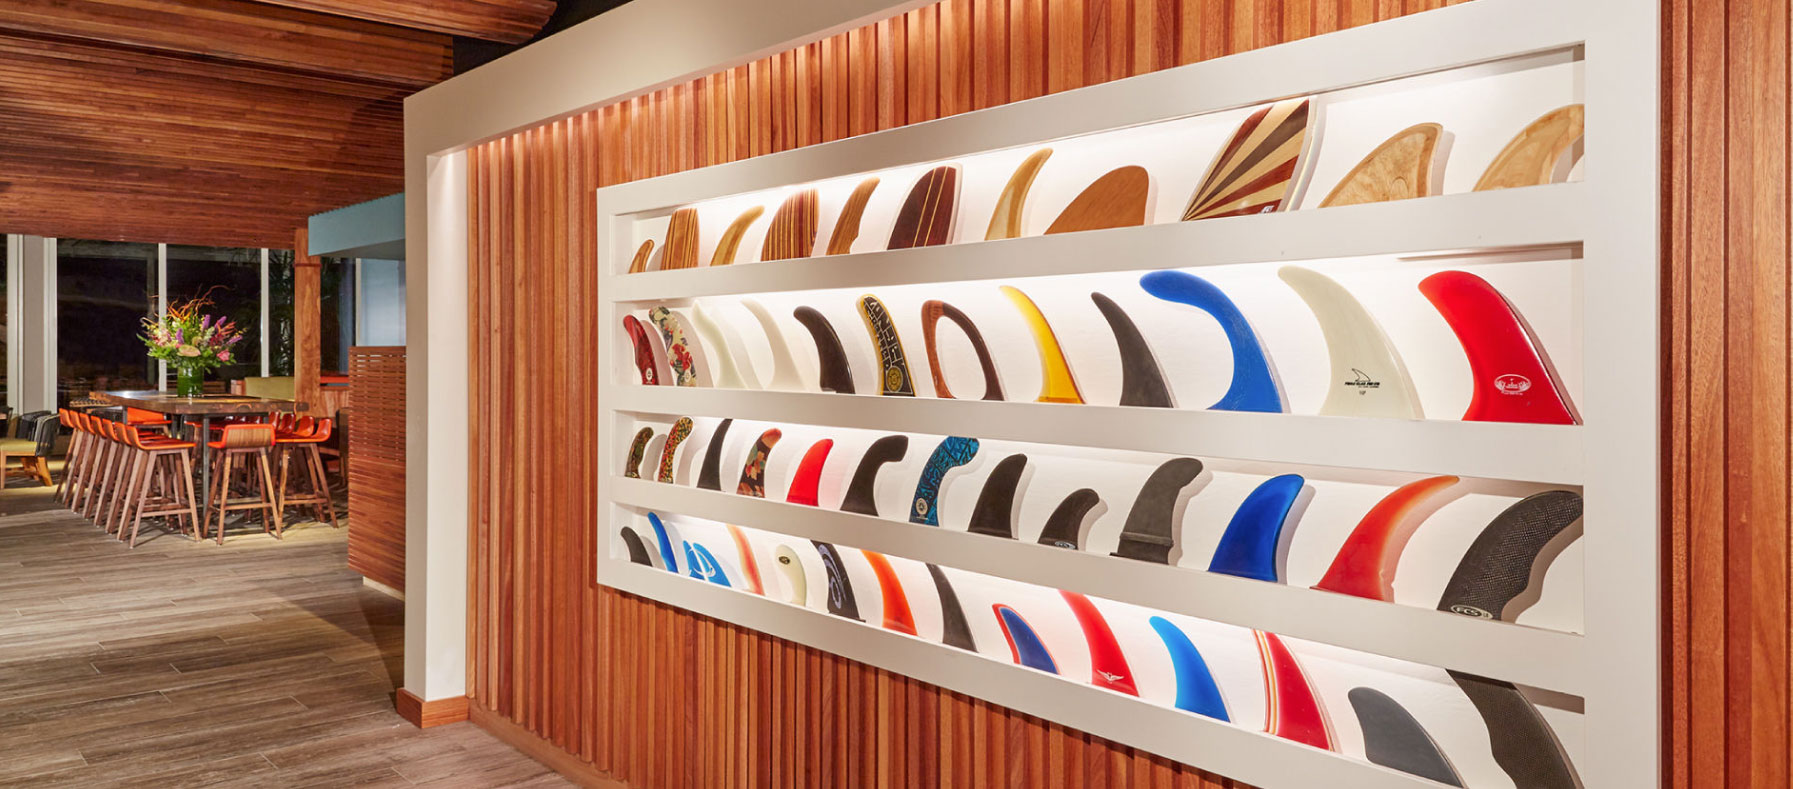 Wall decor with surf fins